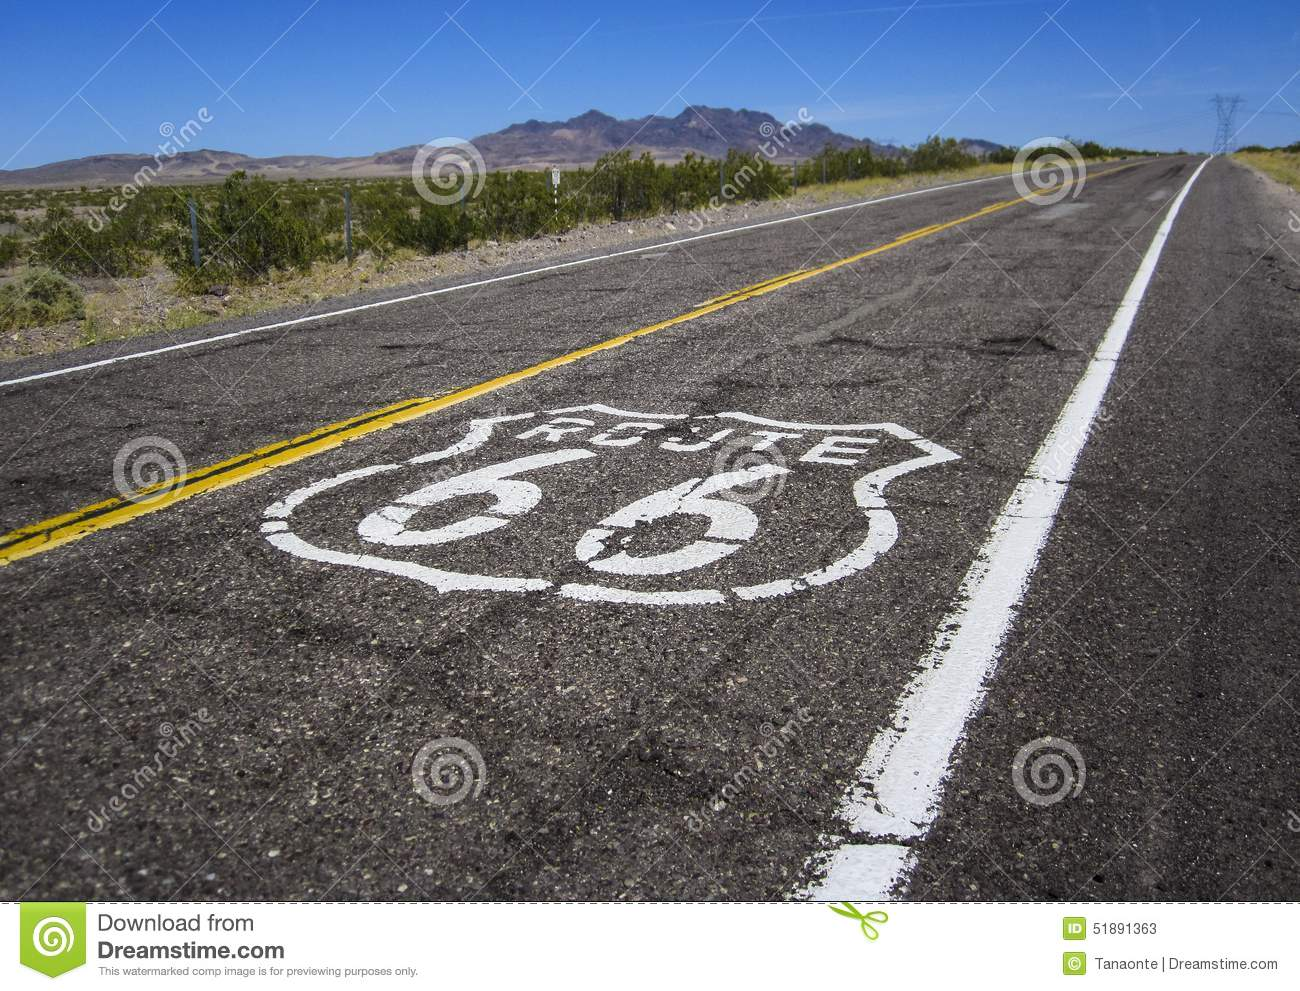 long road with a route 66 sign painted on it stock image - image of